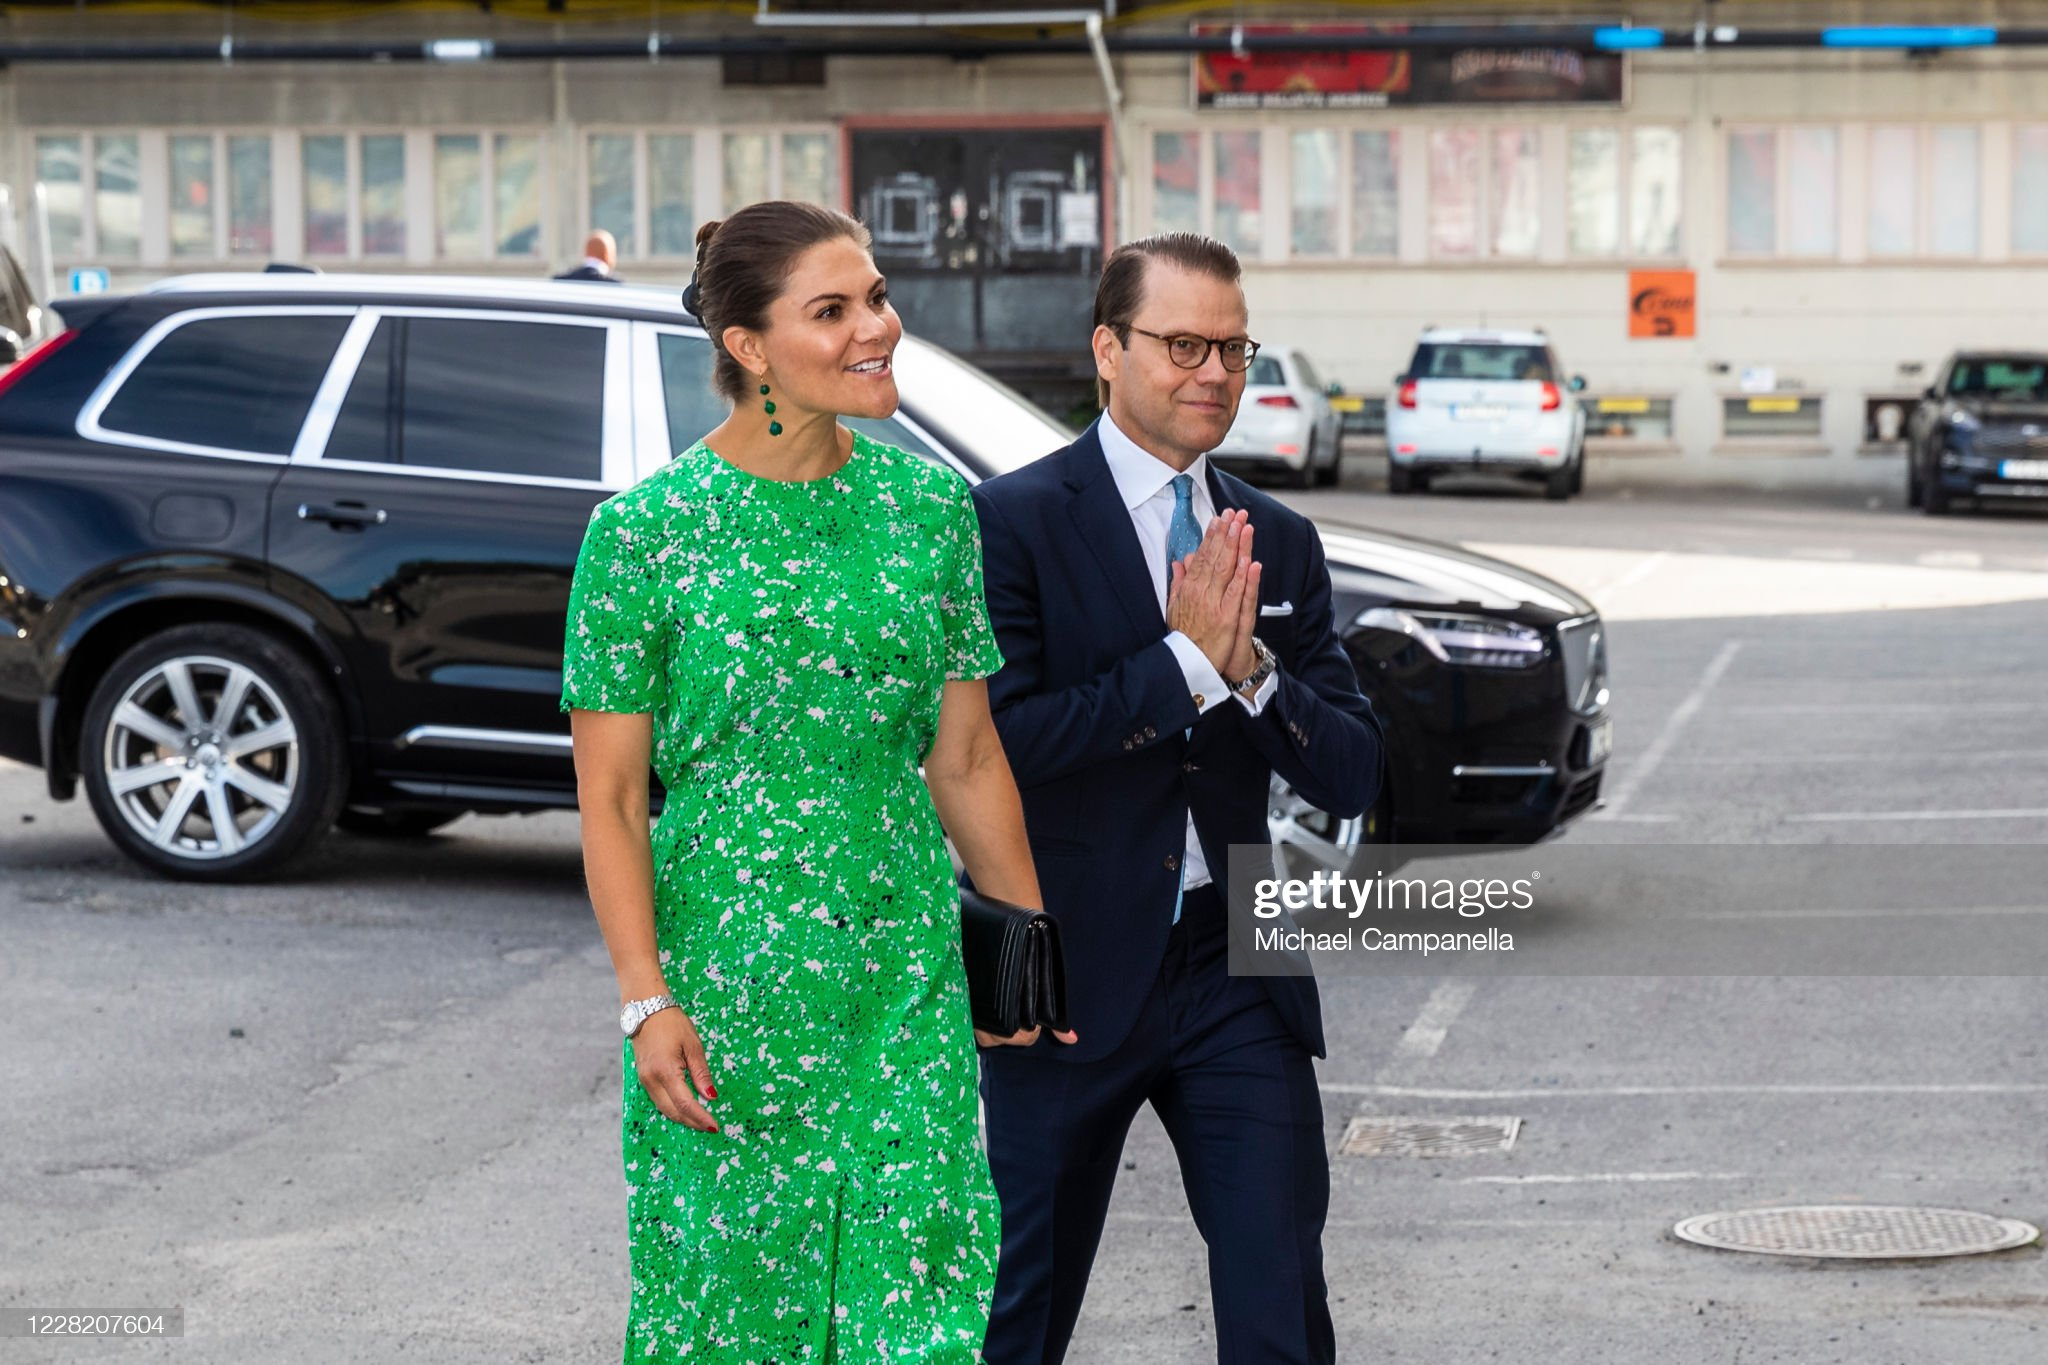 crown-princess-victoria-and-prince-daniel-of-sweden-visit-the-artist-picture-id1228207604